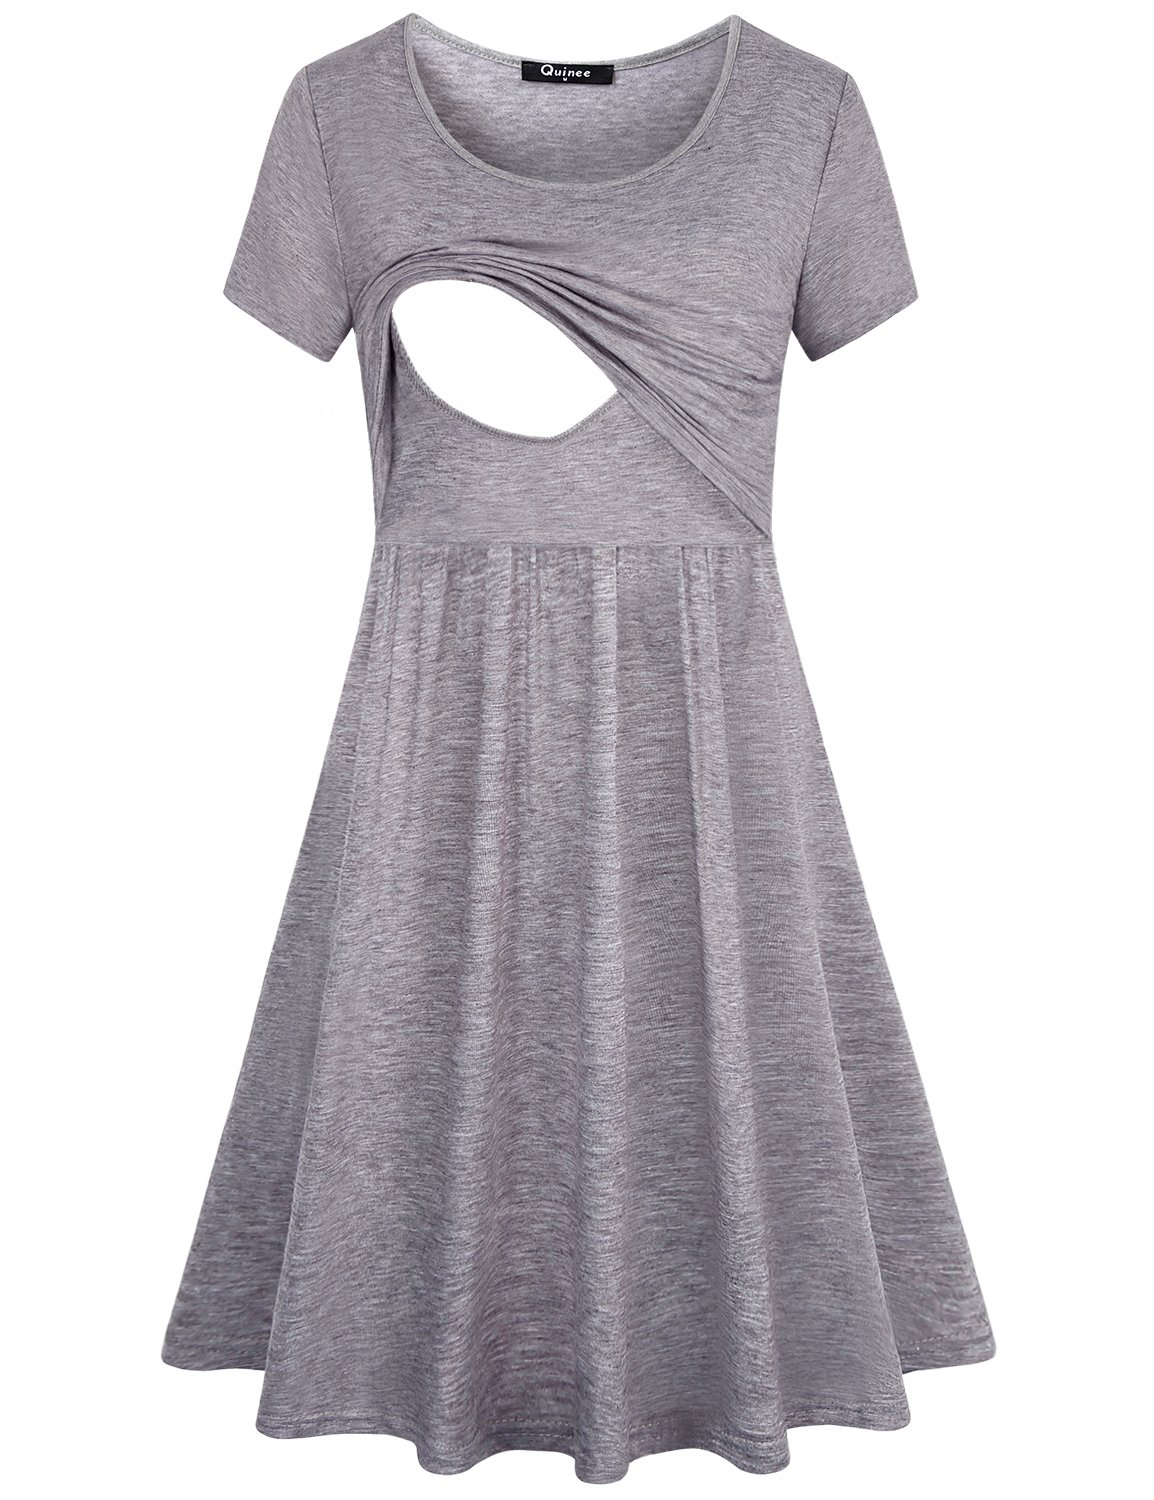 Quinee Nursing Dresses,Womens Summer Short Sleeve Latched Mama Loose Fitting Postpartum Breastfeeding Dress with Double Layers Mid Length A Line Trensy Soft Comfortable Maternity Clothing Grey M